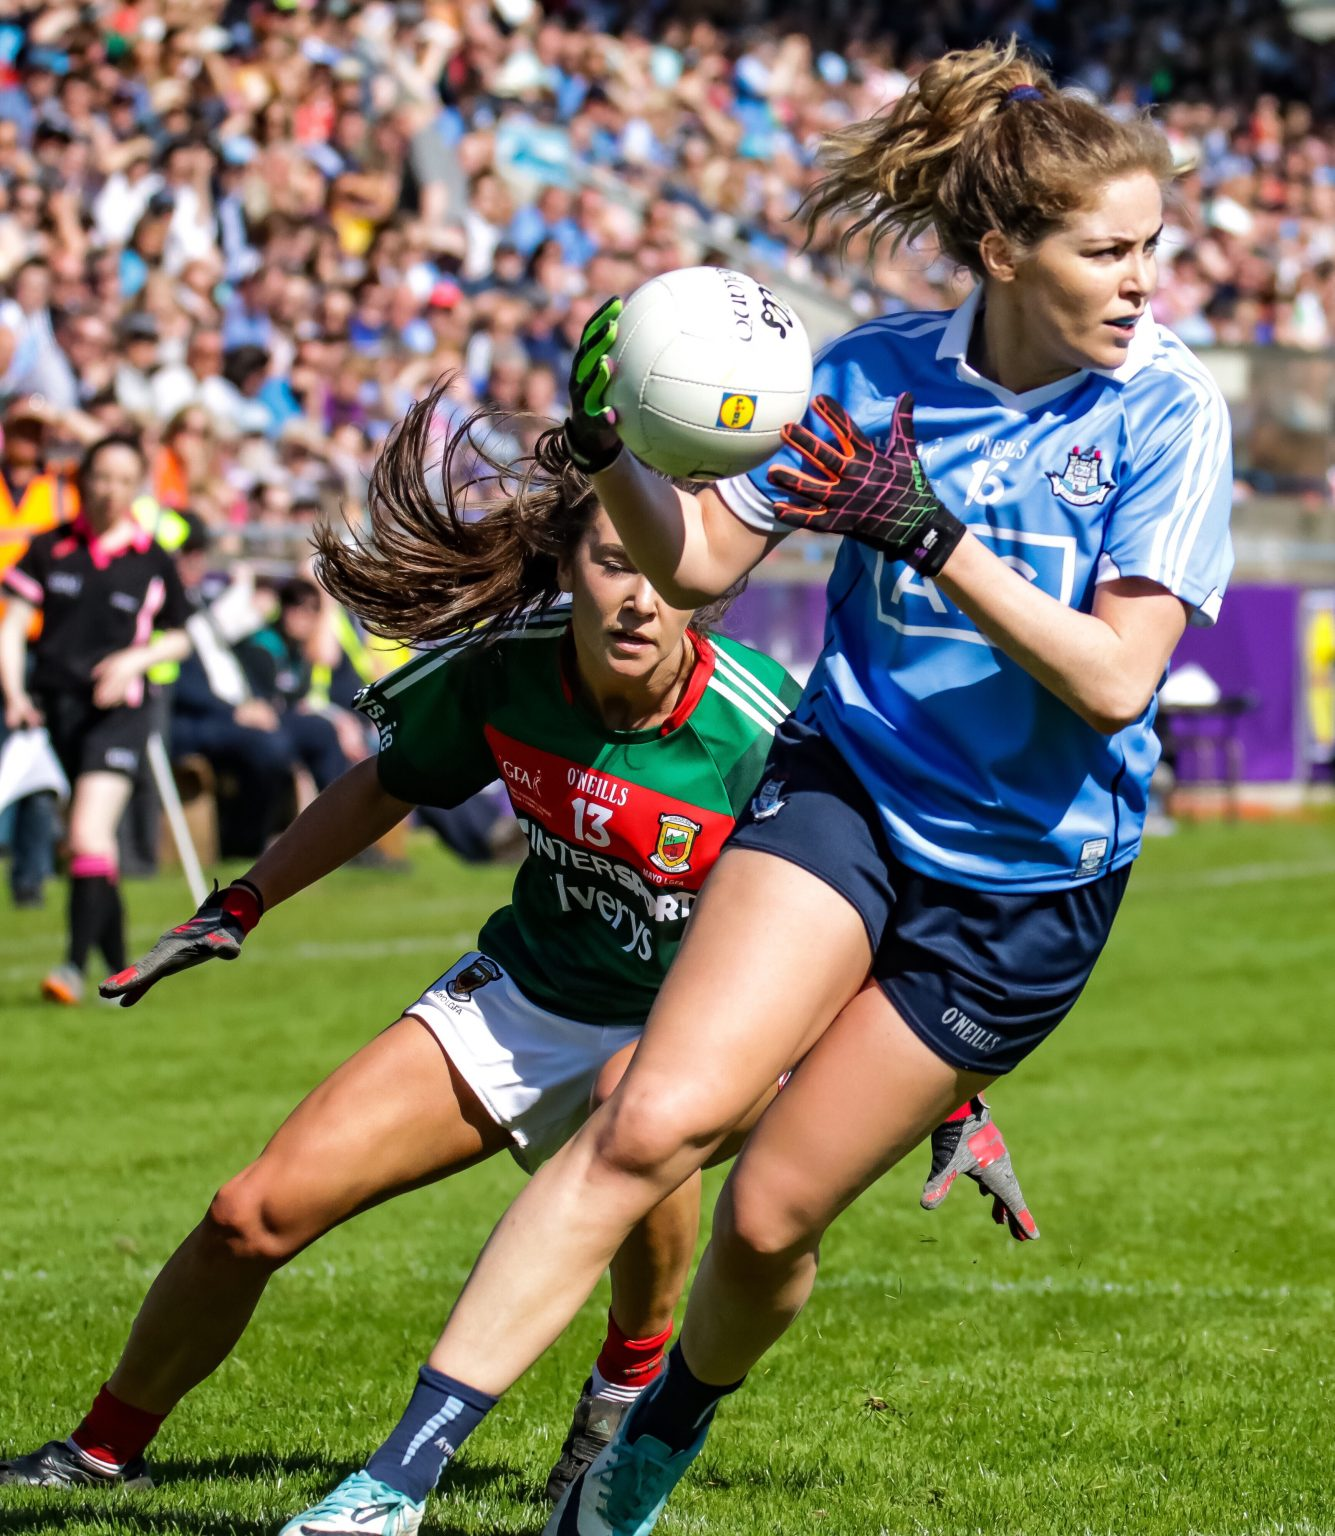 Dublin defender Sinead Finnegan In Sky Blue Jersey Breaks Out Of Defence With White Ball During Dublin's victory and first ever Division 1 League Title